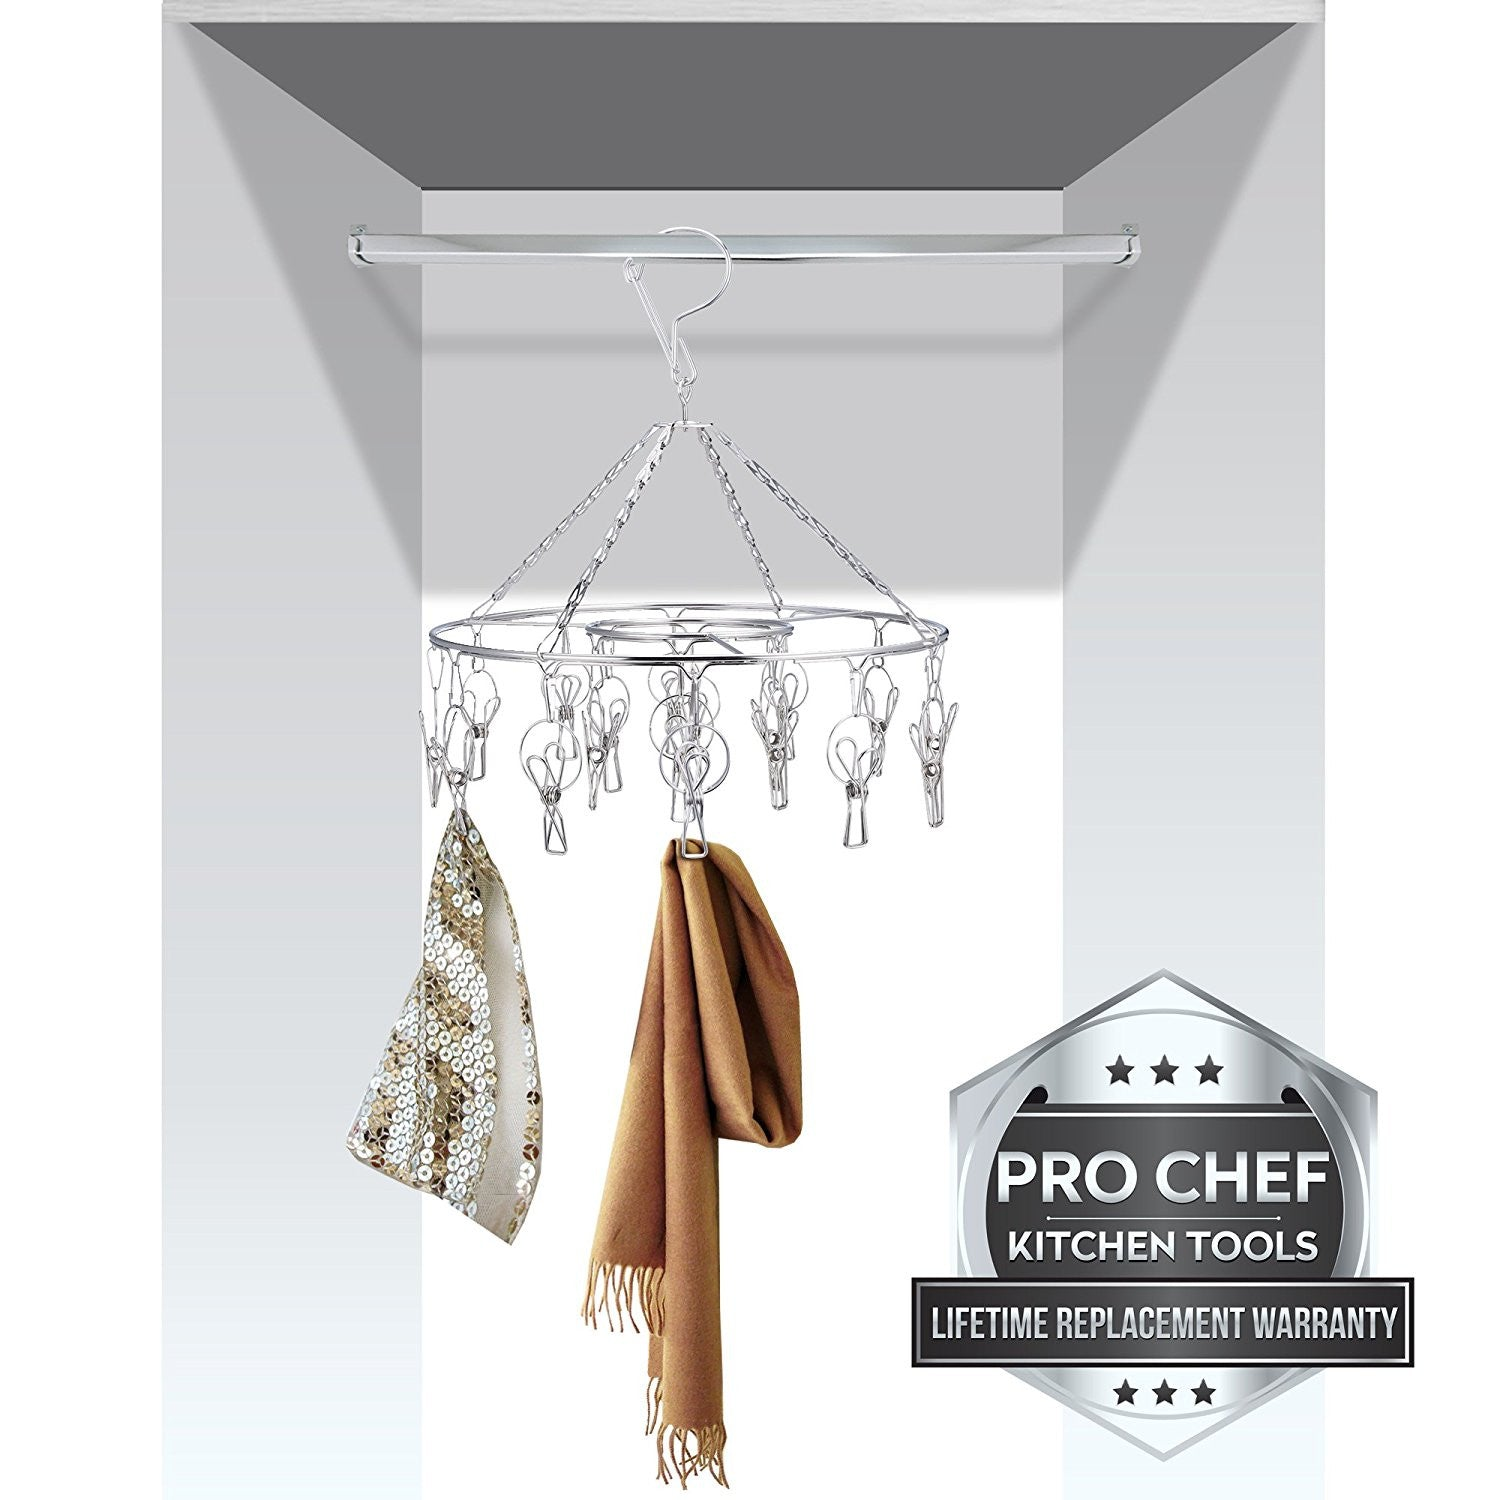 Pro Chef Kitchen Tools Stainless Steel Laundry Drying Rack - Round Com